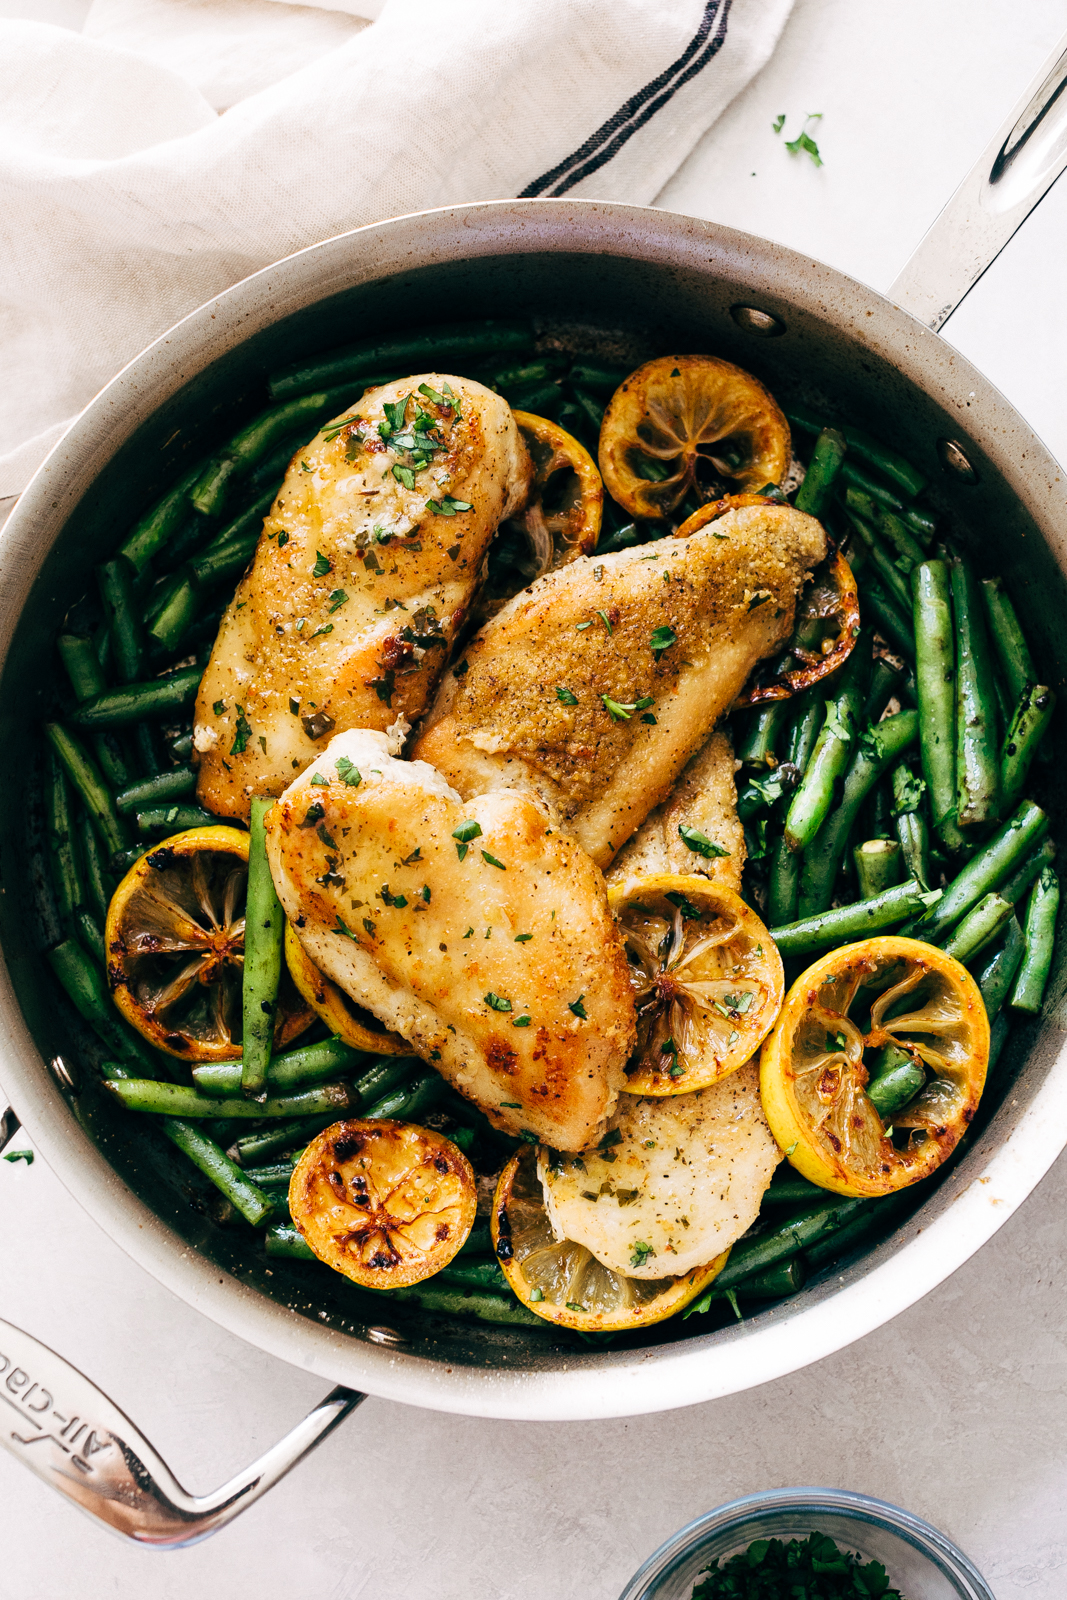 skillet holing sautéed green beans with seared chicken and seared lemon slices